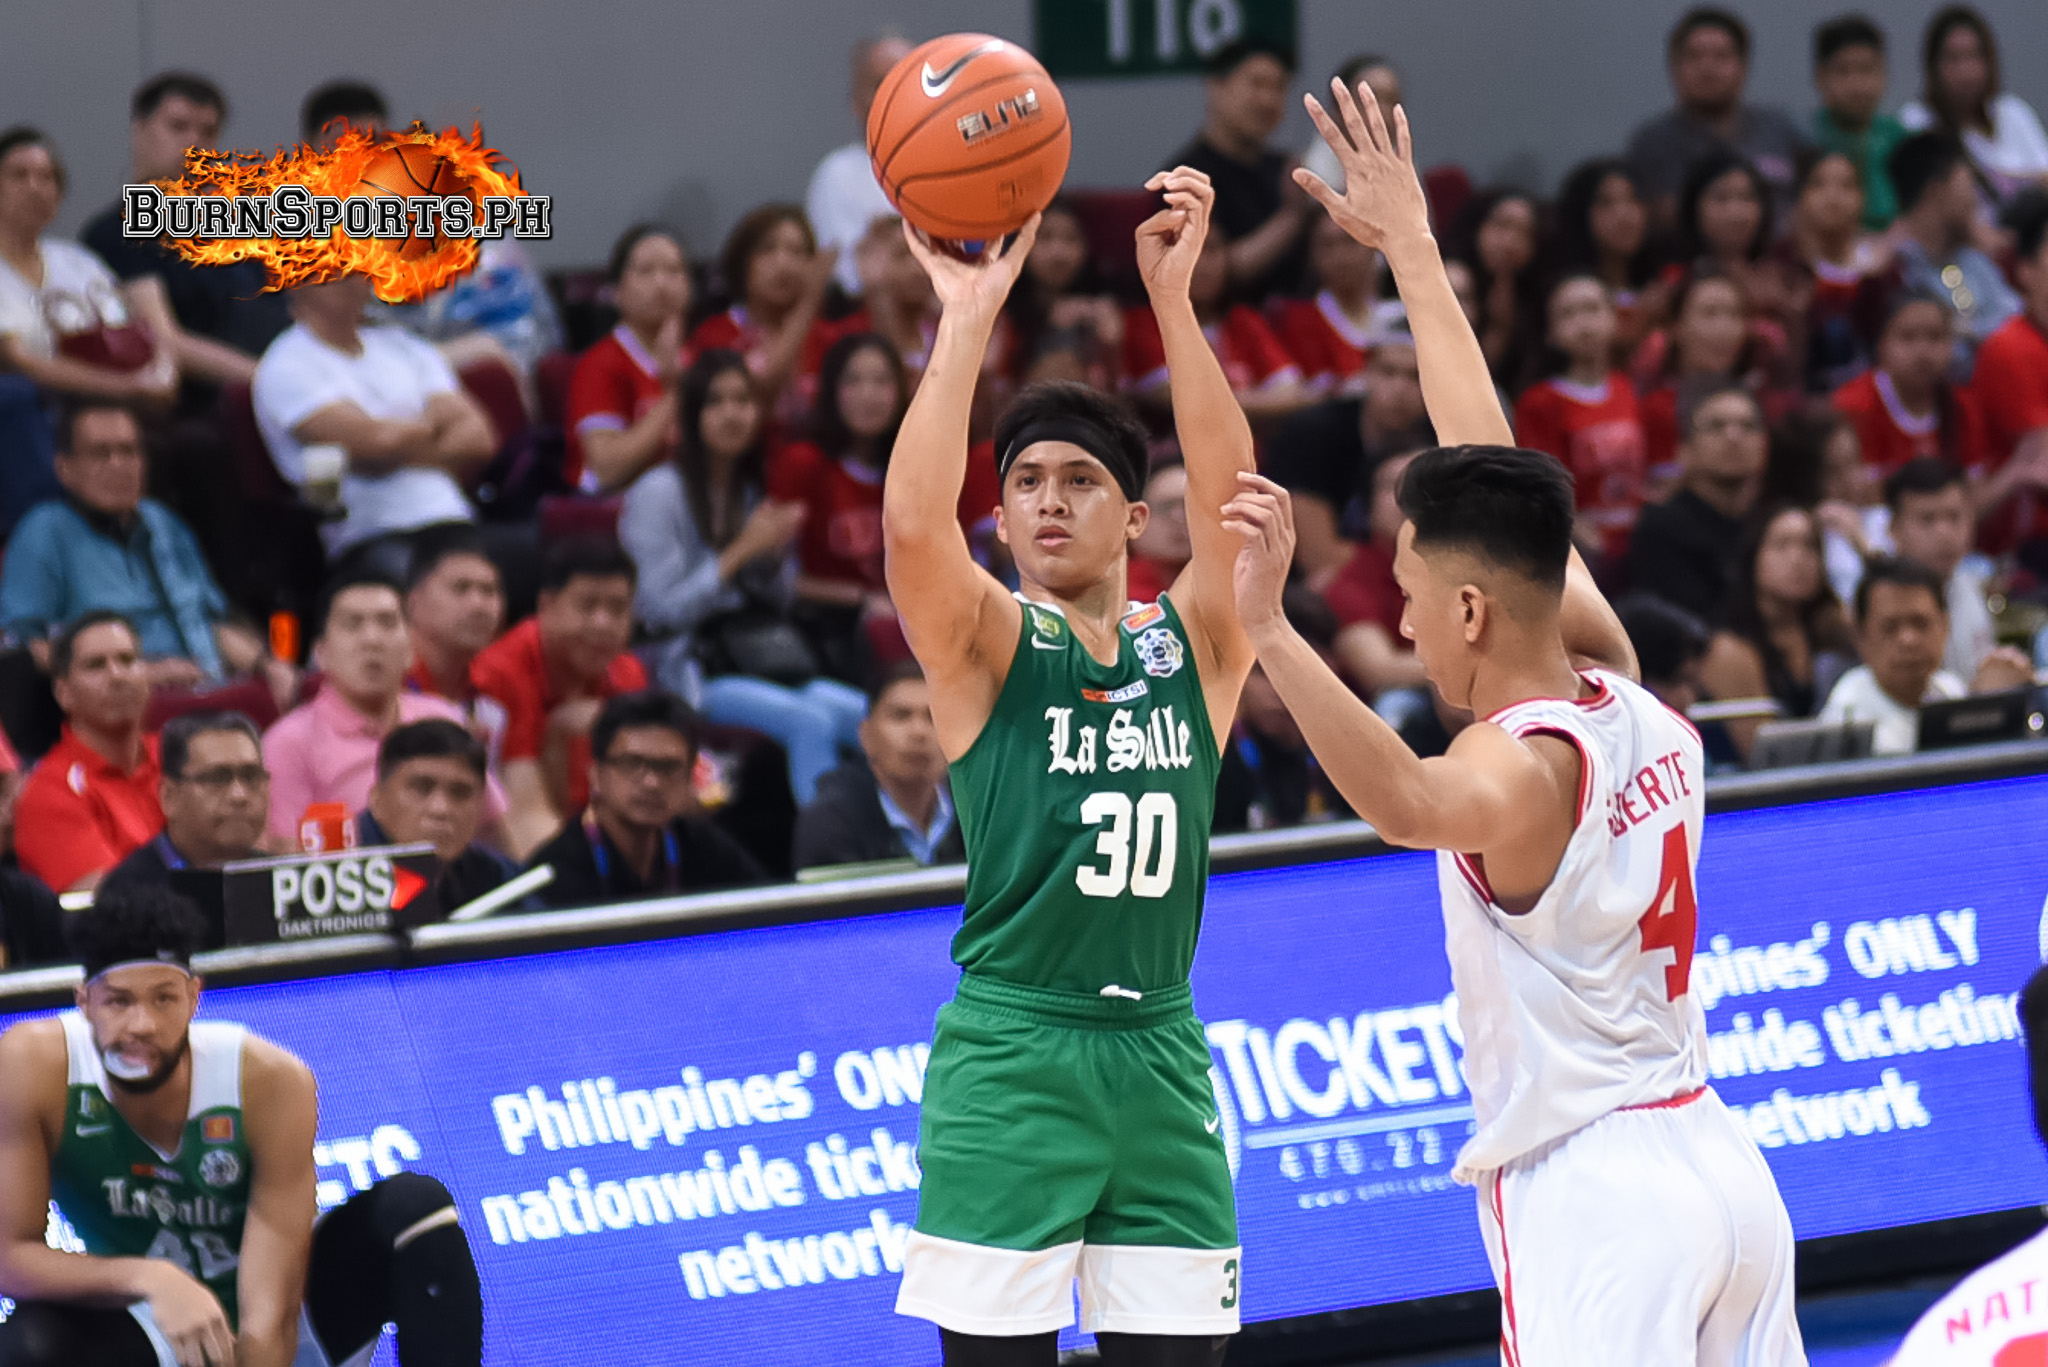 Alab Pilipinas boosts squad as Caracut, Heading sign up